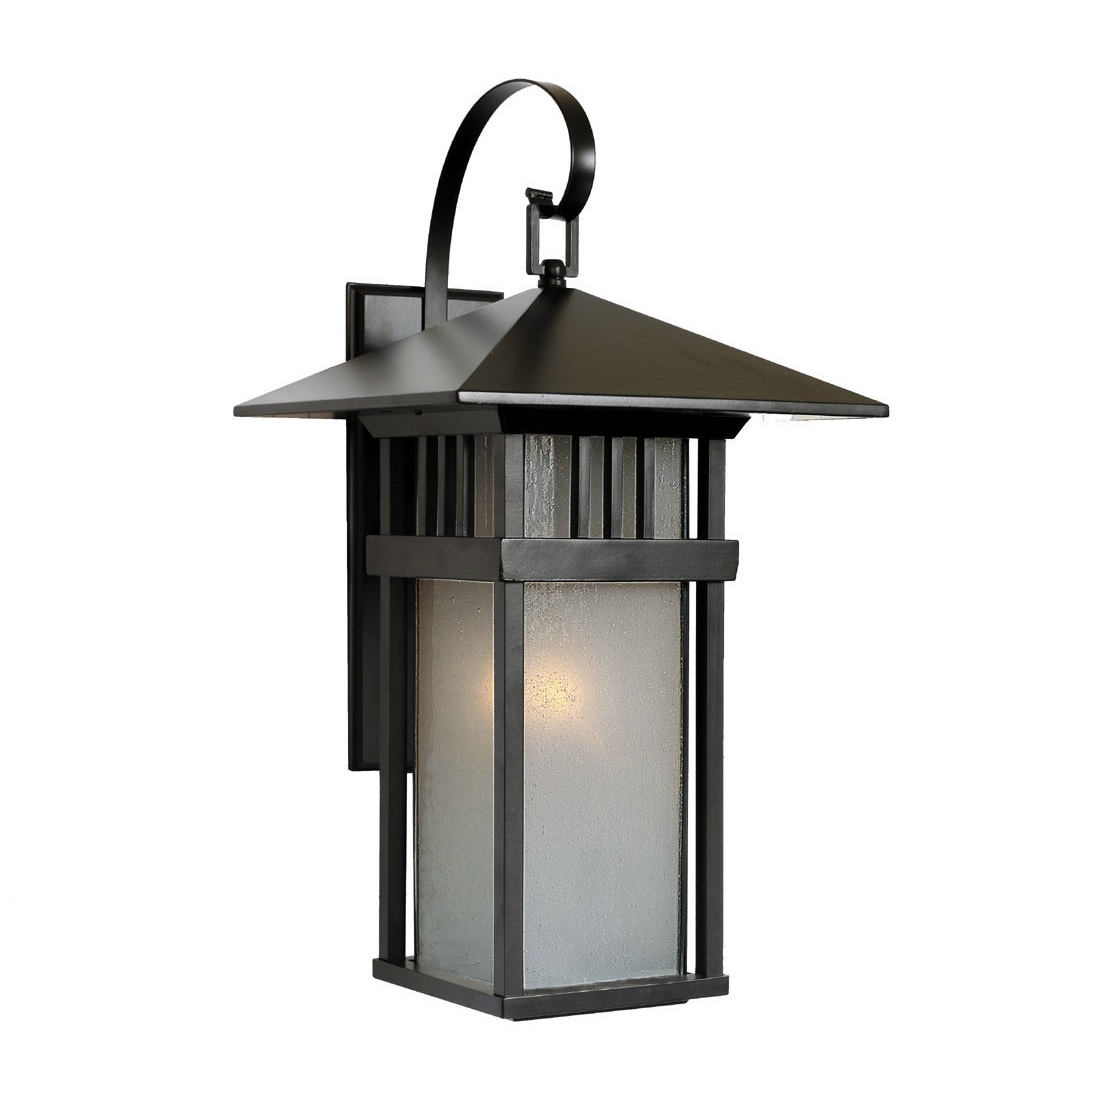 new outdoor wall lamp sconce white jelly jar light fixture. Black Bedroom Furniture Sets. Home Design Ideas